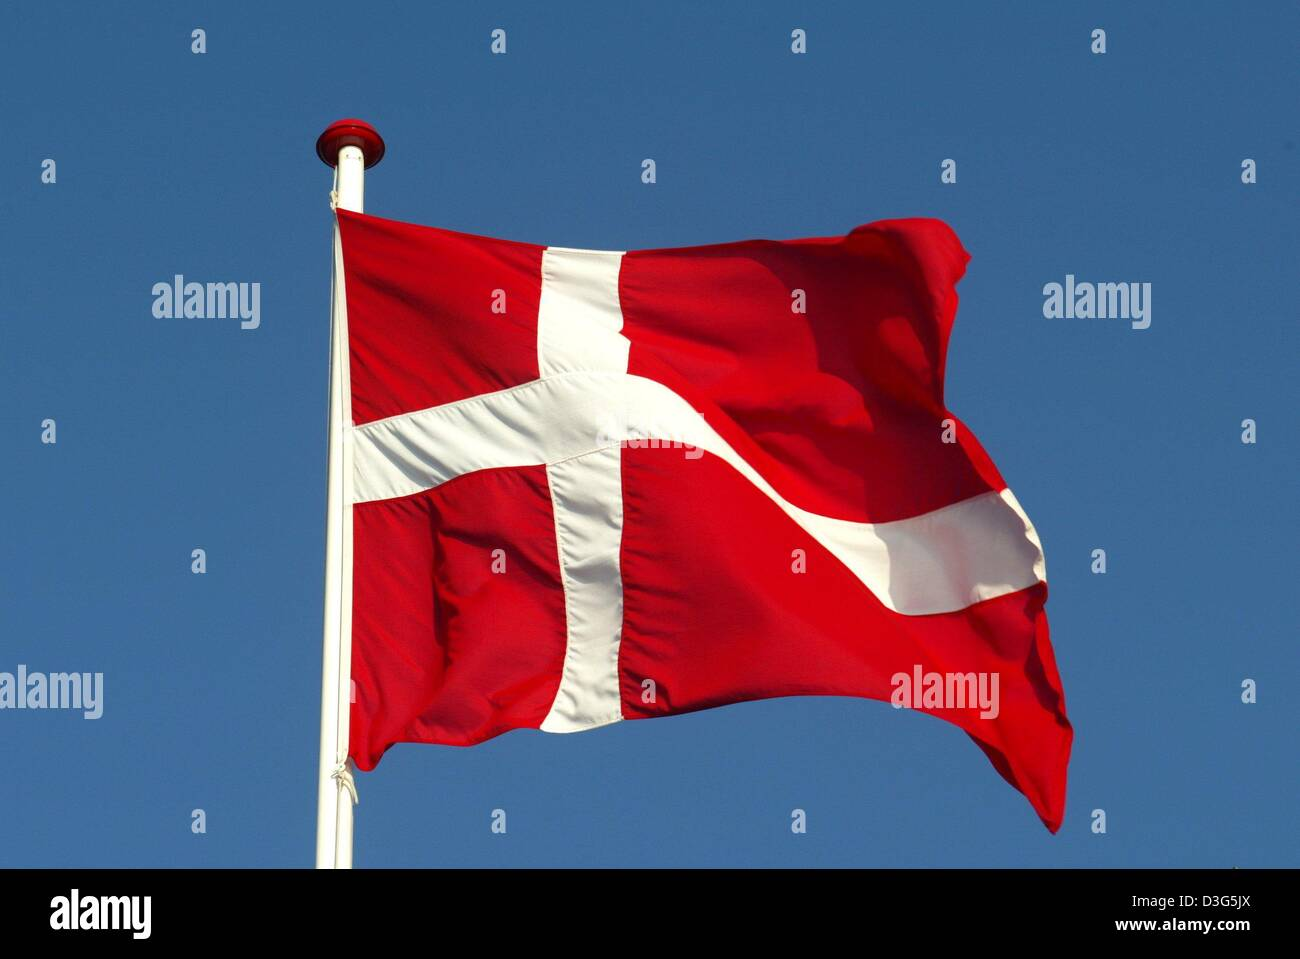 Dpa The National Flag Of Denmark A White Cross On A Red Ground